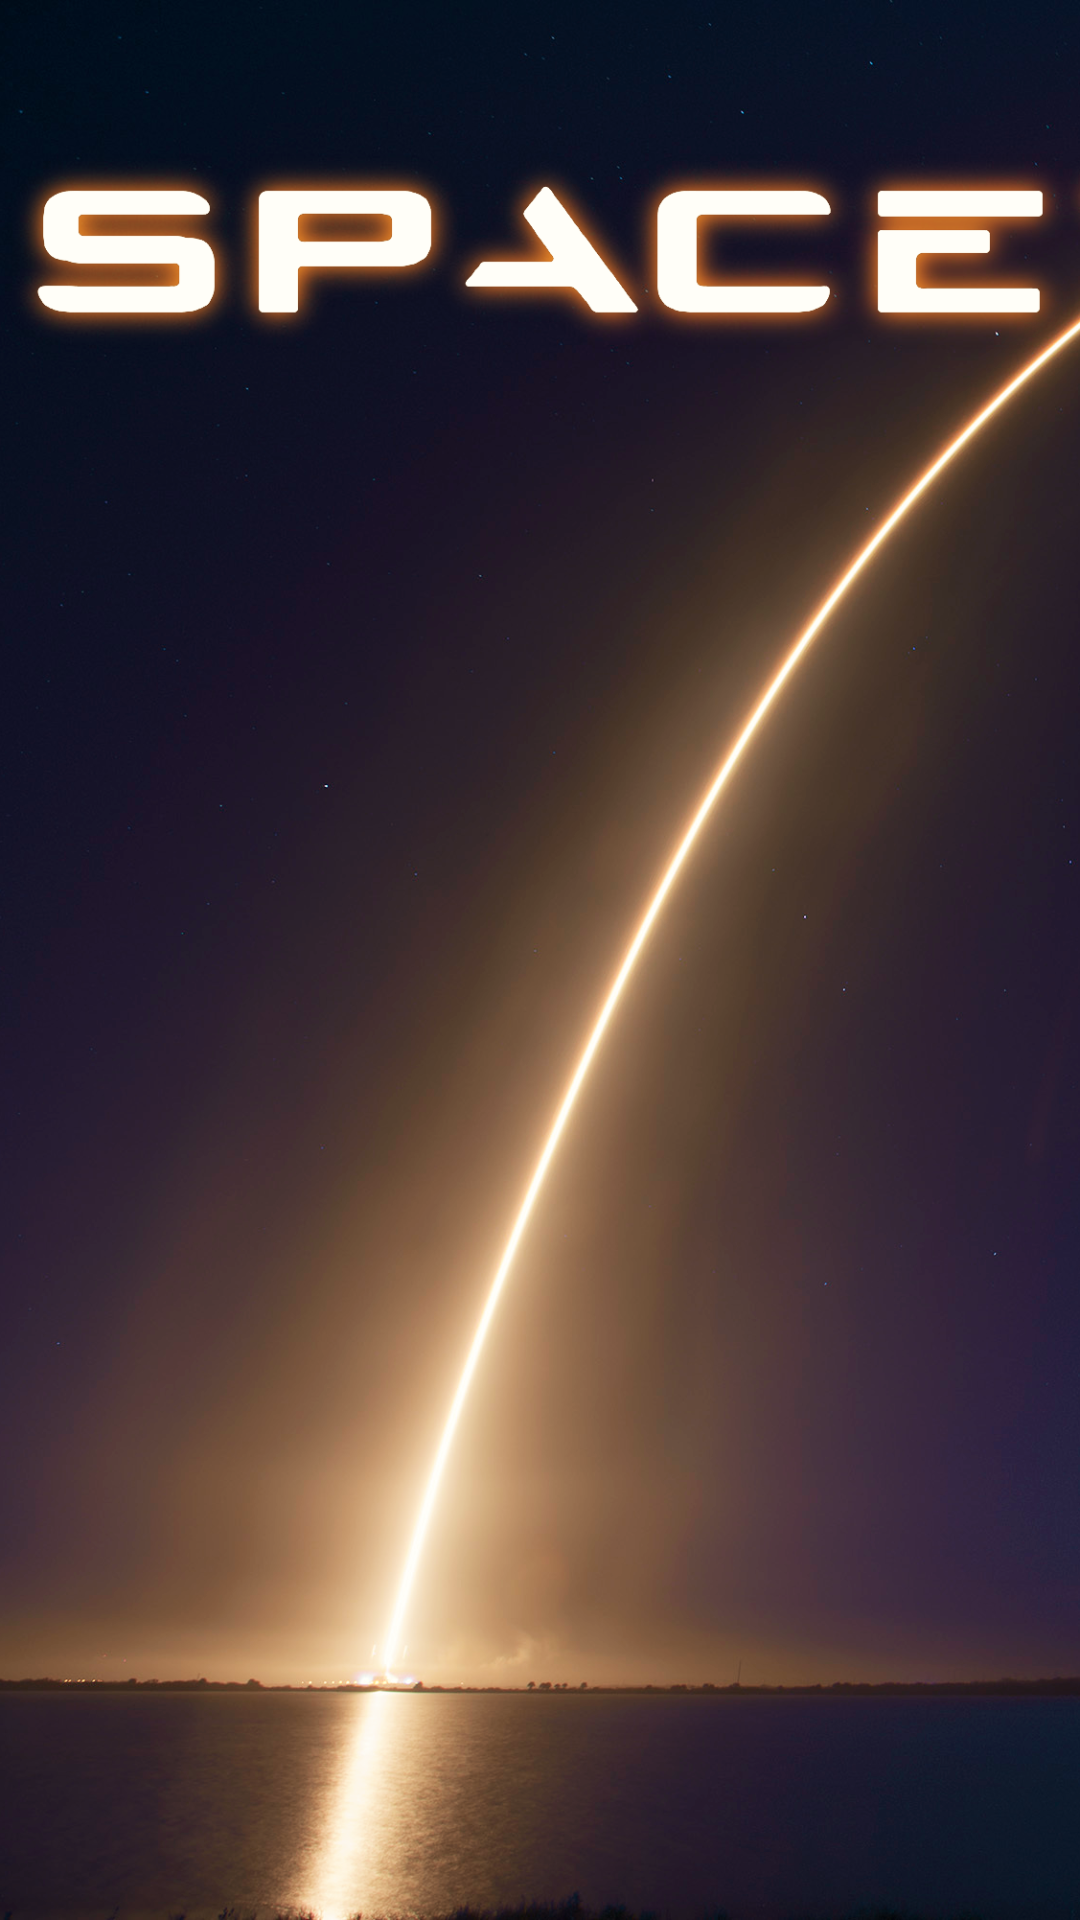 Technology Spacex 1080x1920 Wallpaper Id 688905 Mobile